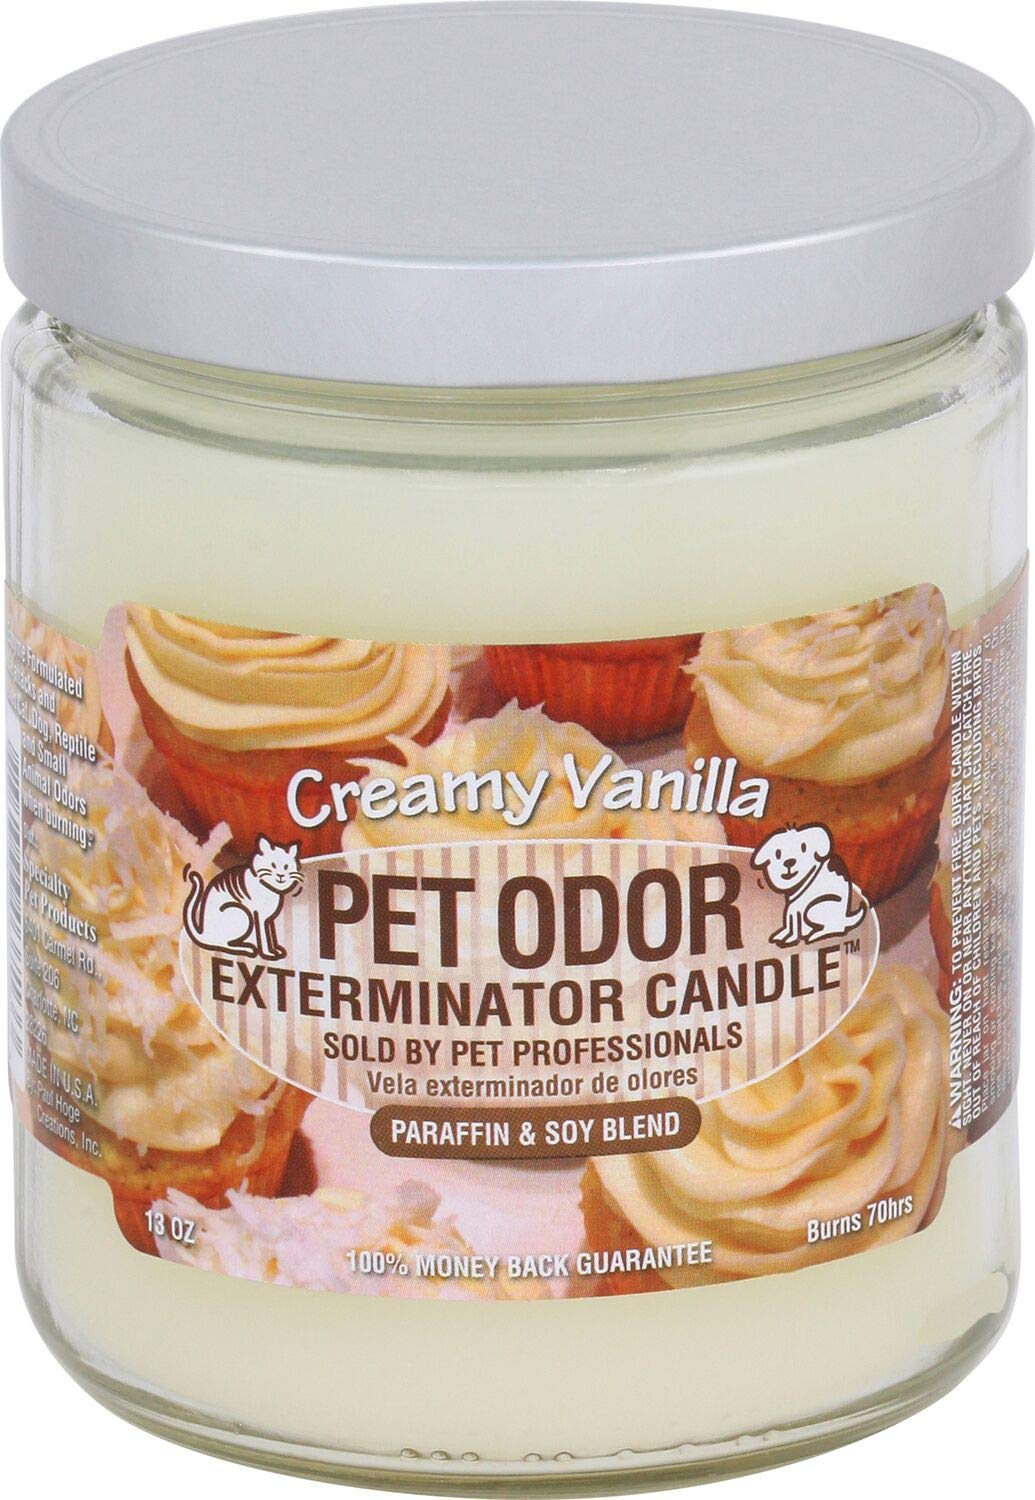 Pet Odor Exterminator Specialty Pet Products Candle, Creamy Vanilla, 13oz - Pack of 2